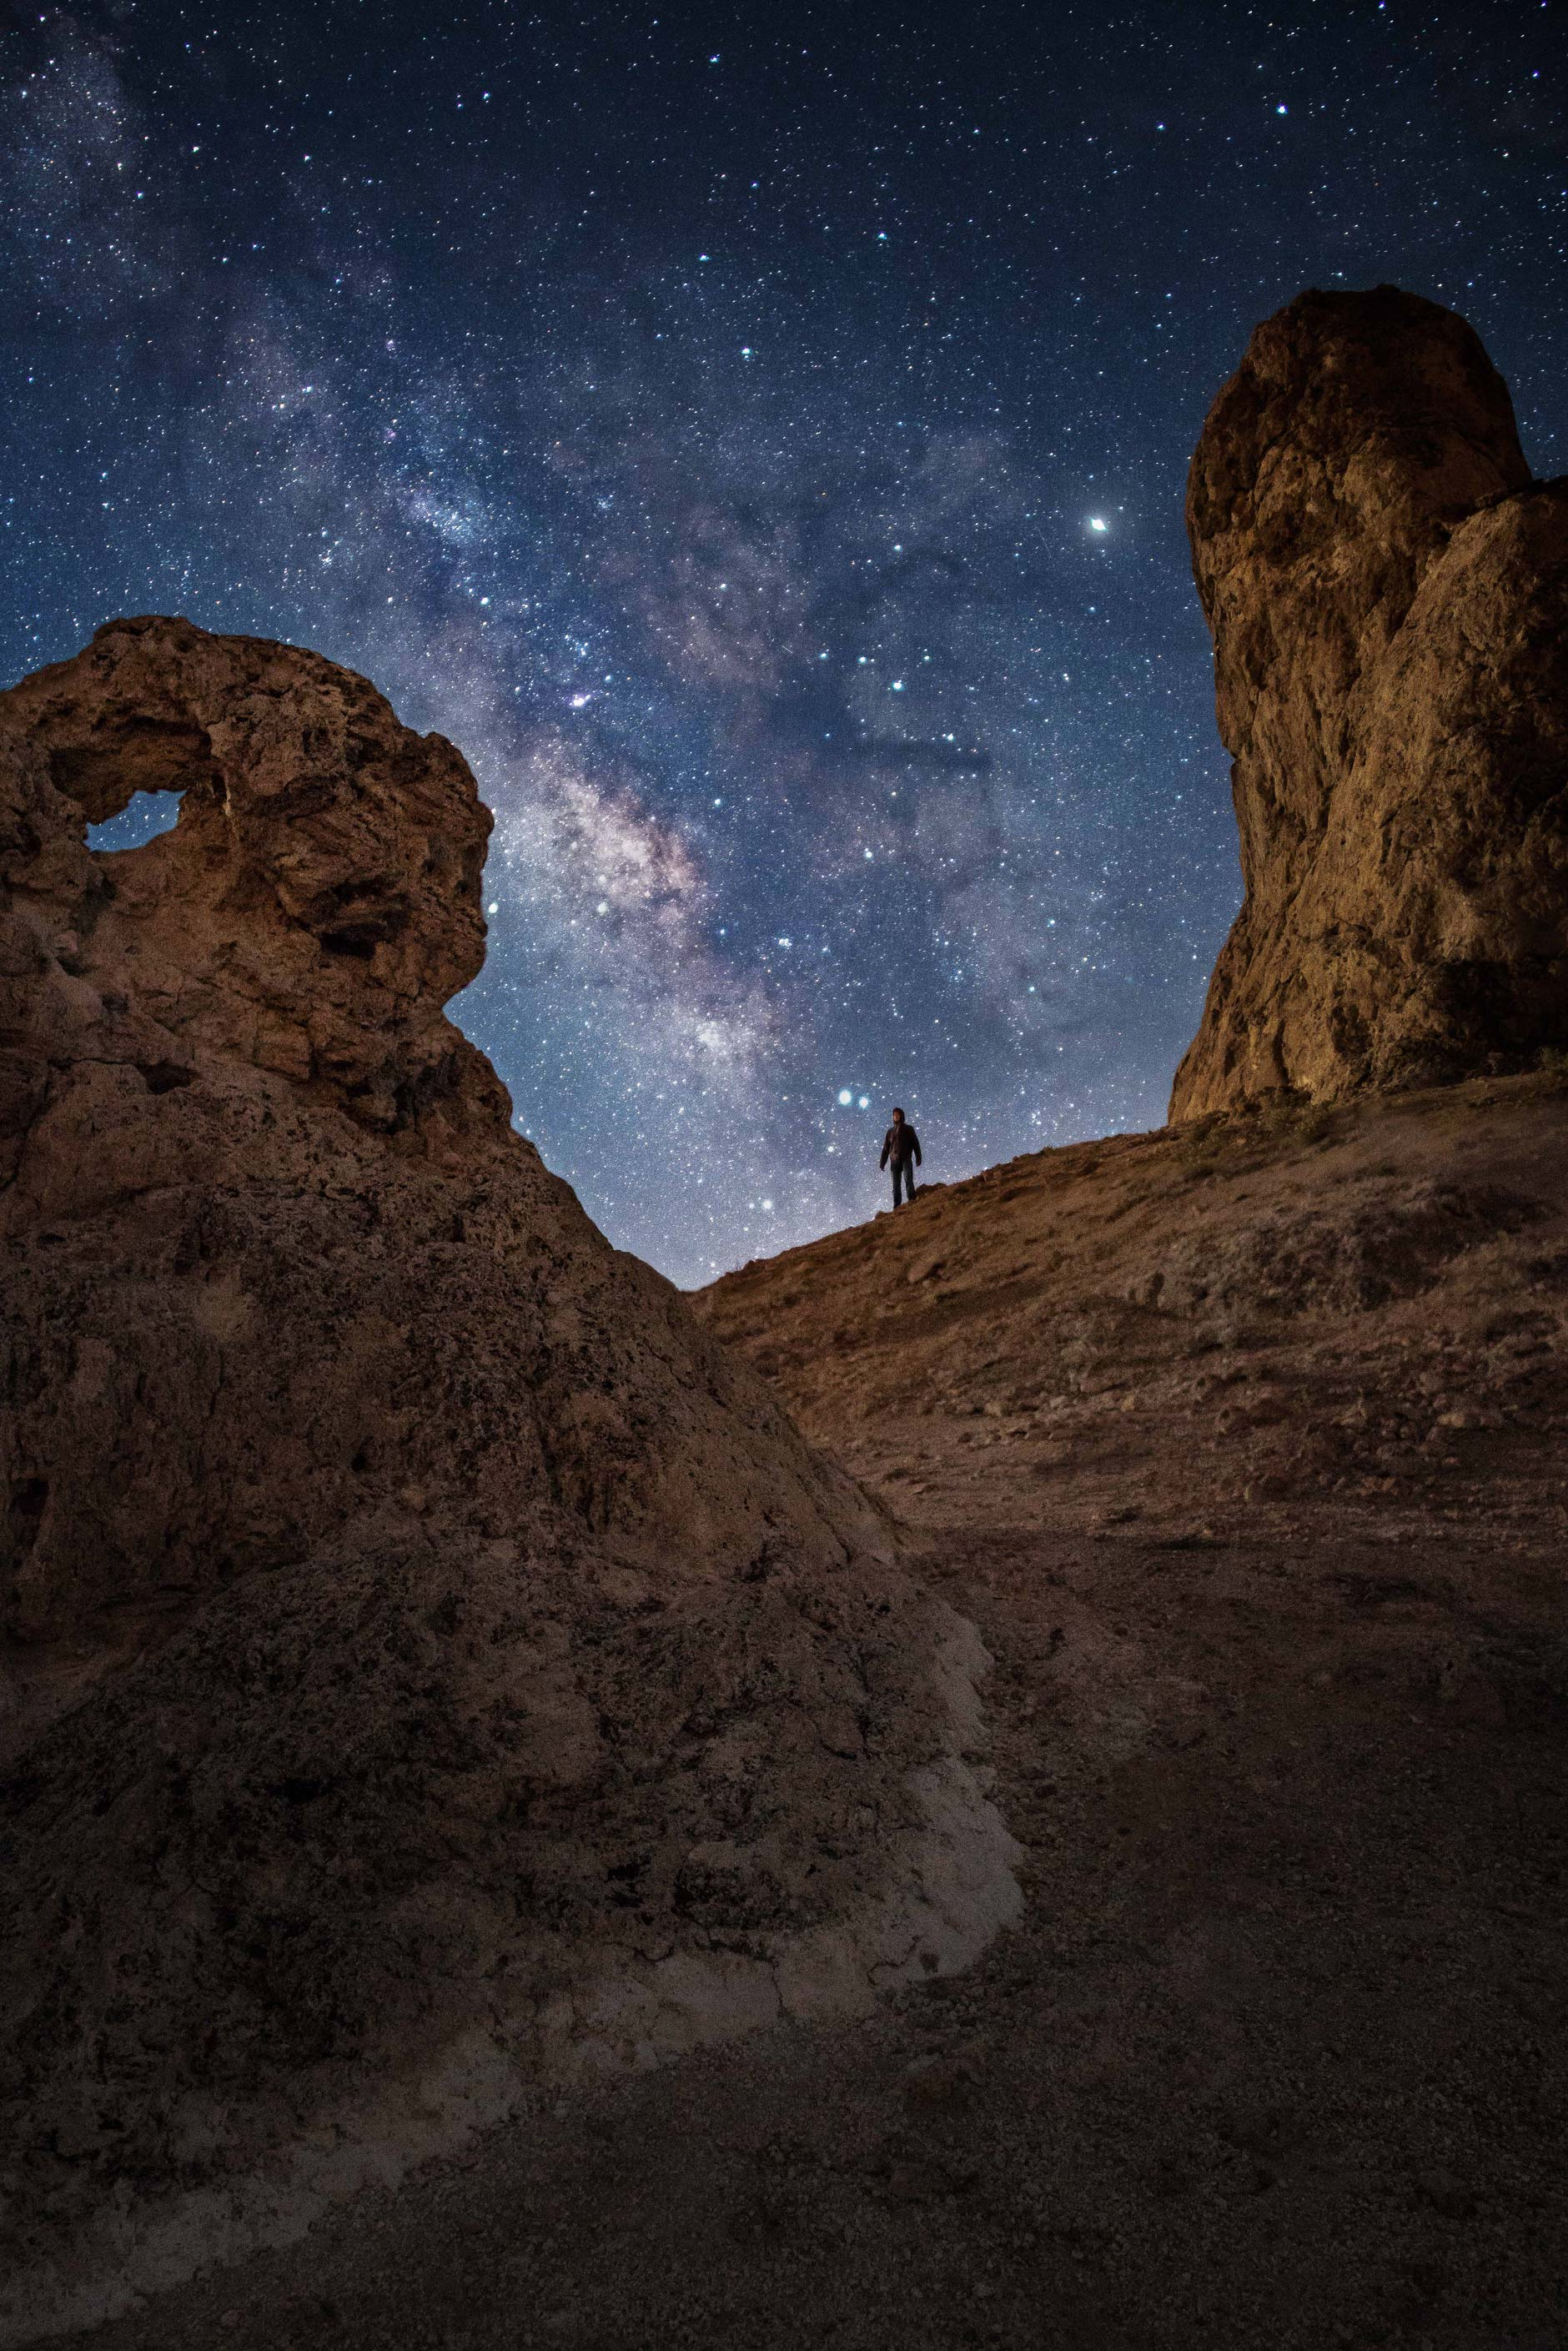 Star photography of the desert and a person